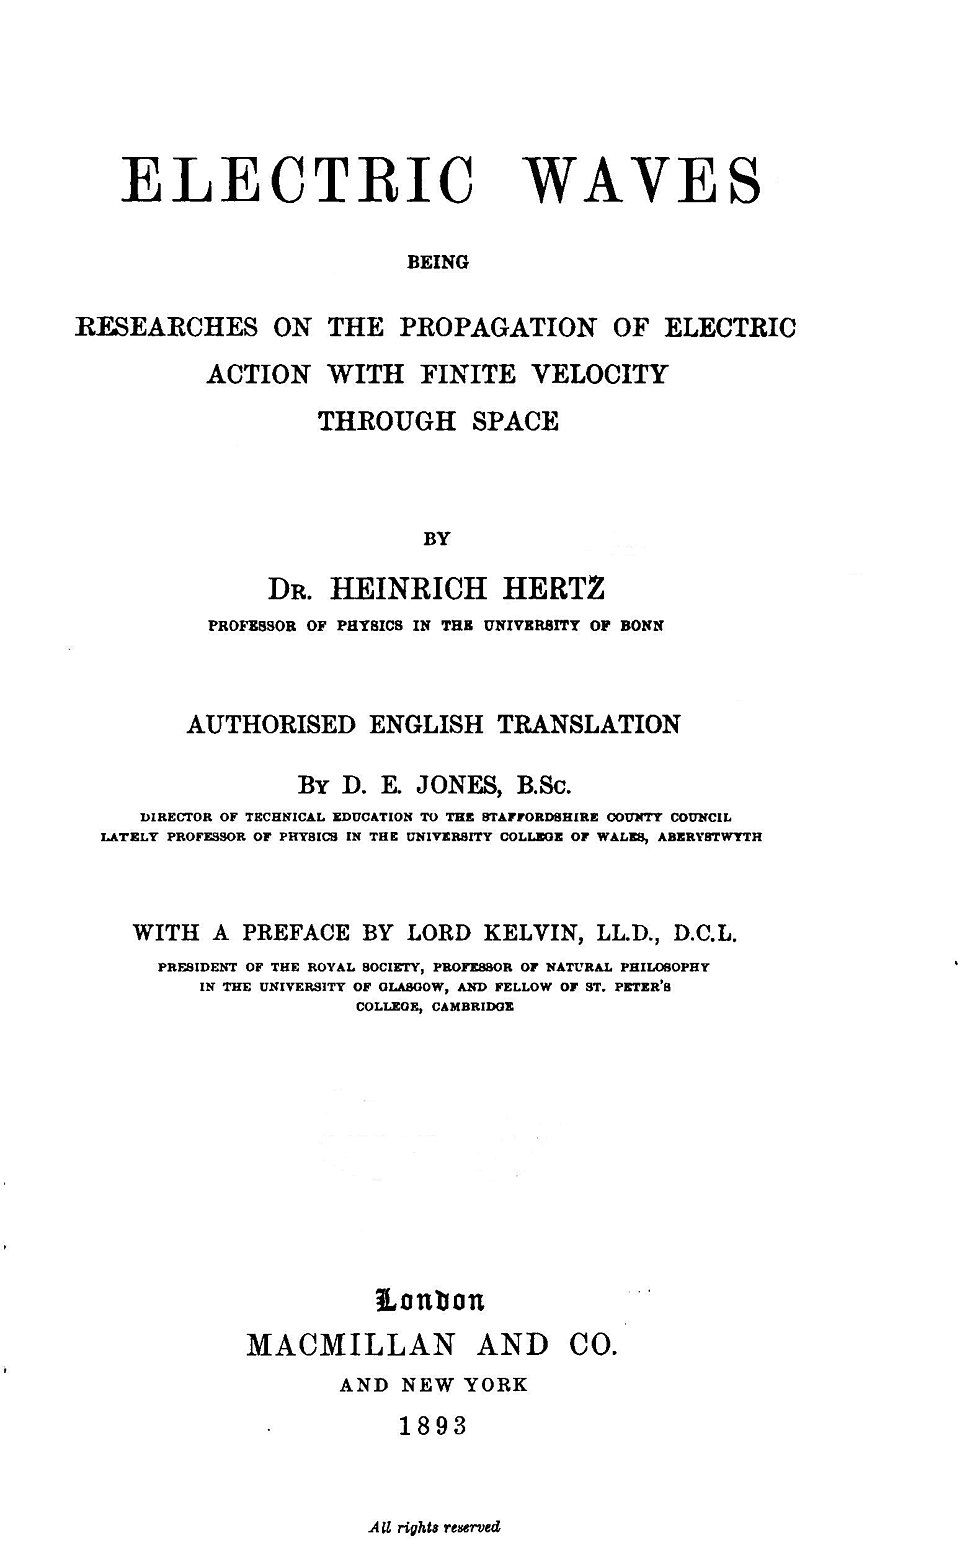 Electric Waves being Research on the Propagation of Electric Action with Finite Velcity Through Space.jpg